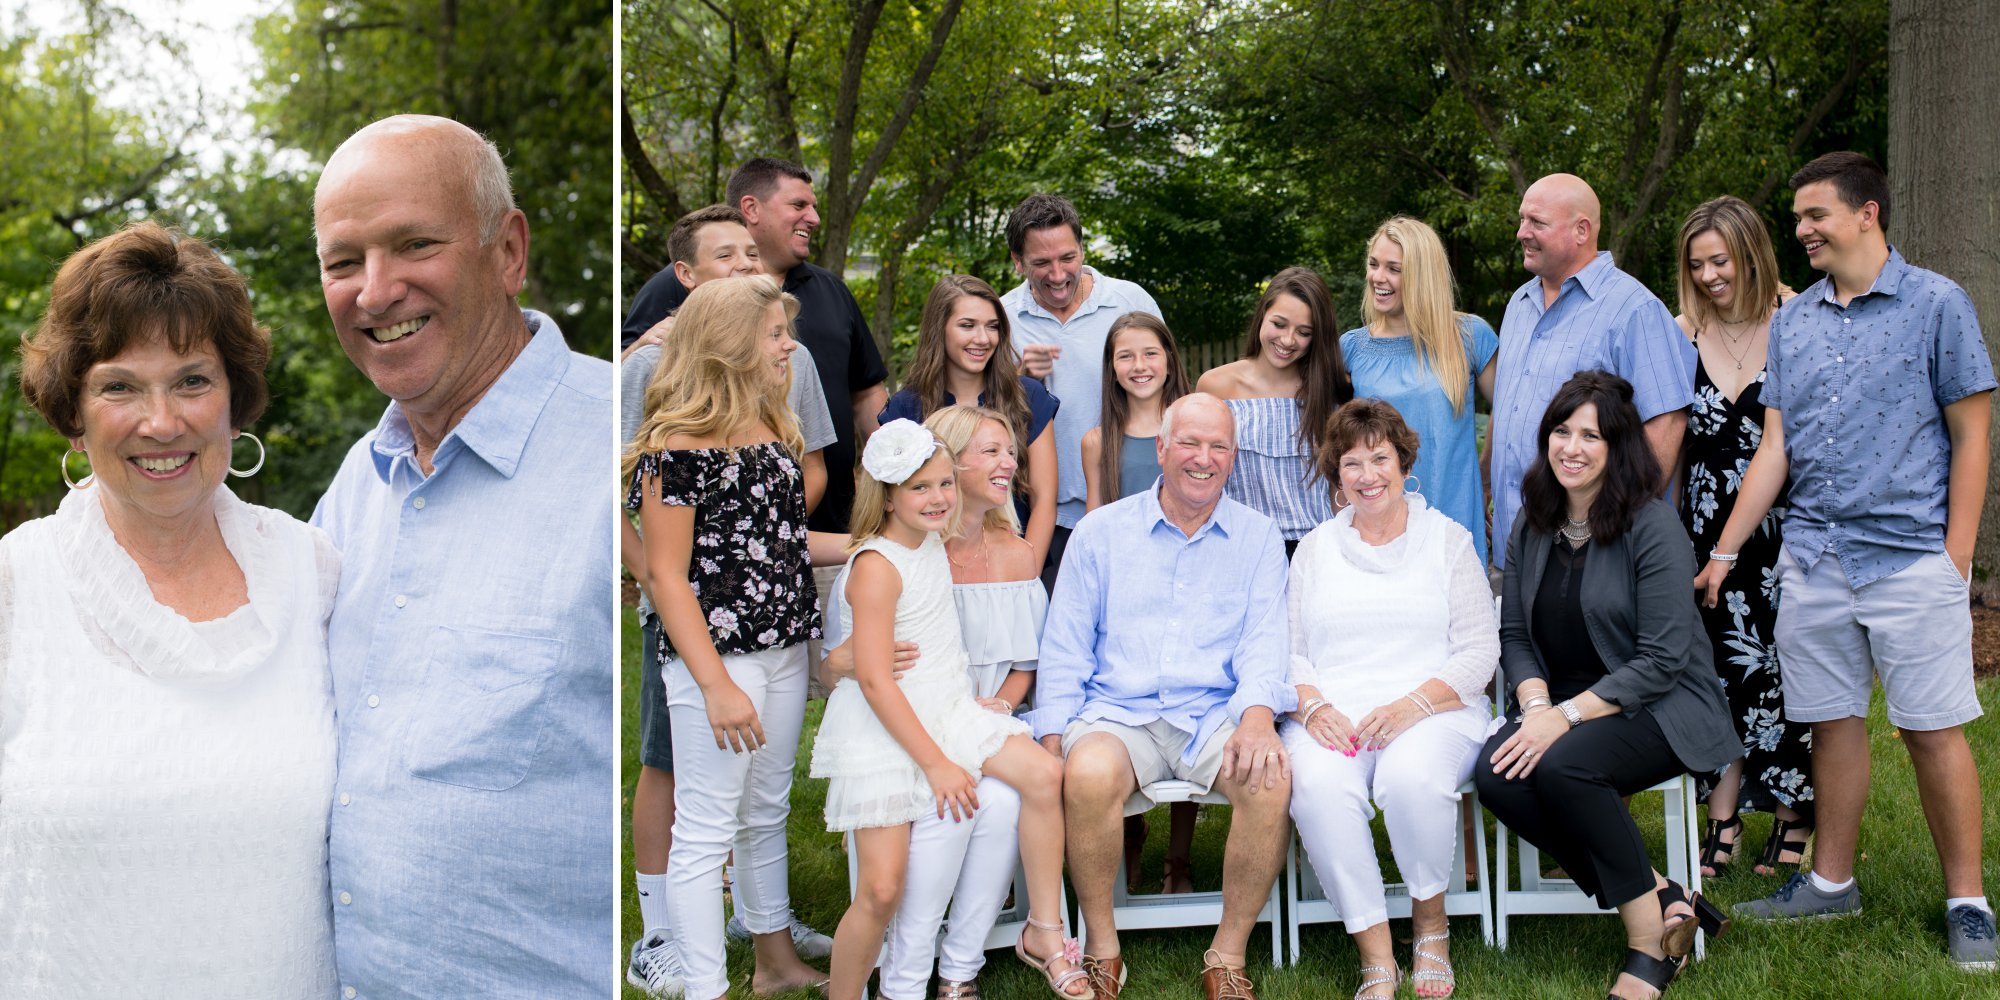 50th anniversary pictures of extended family laughing